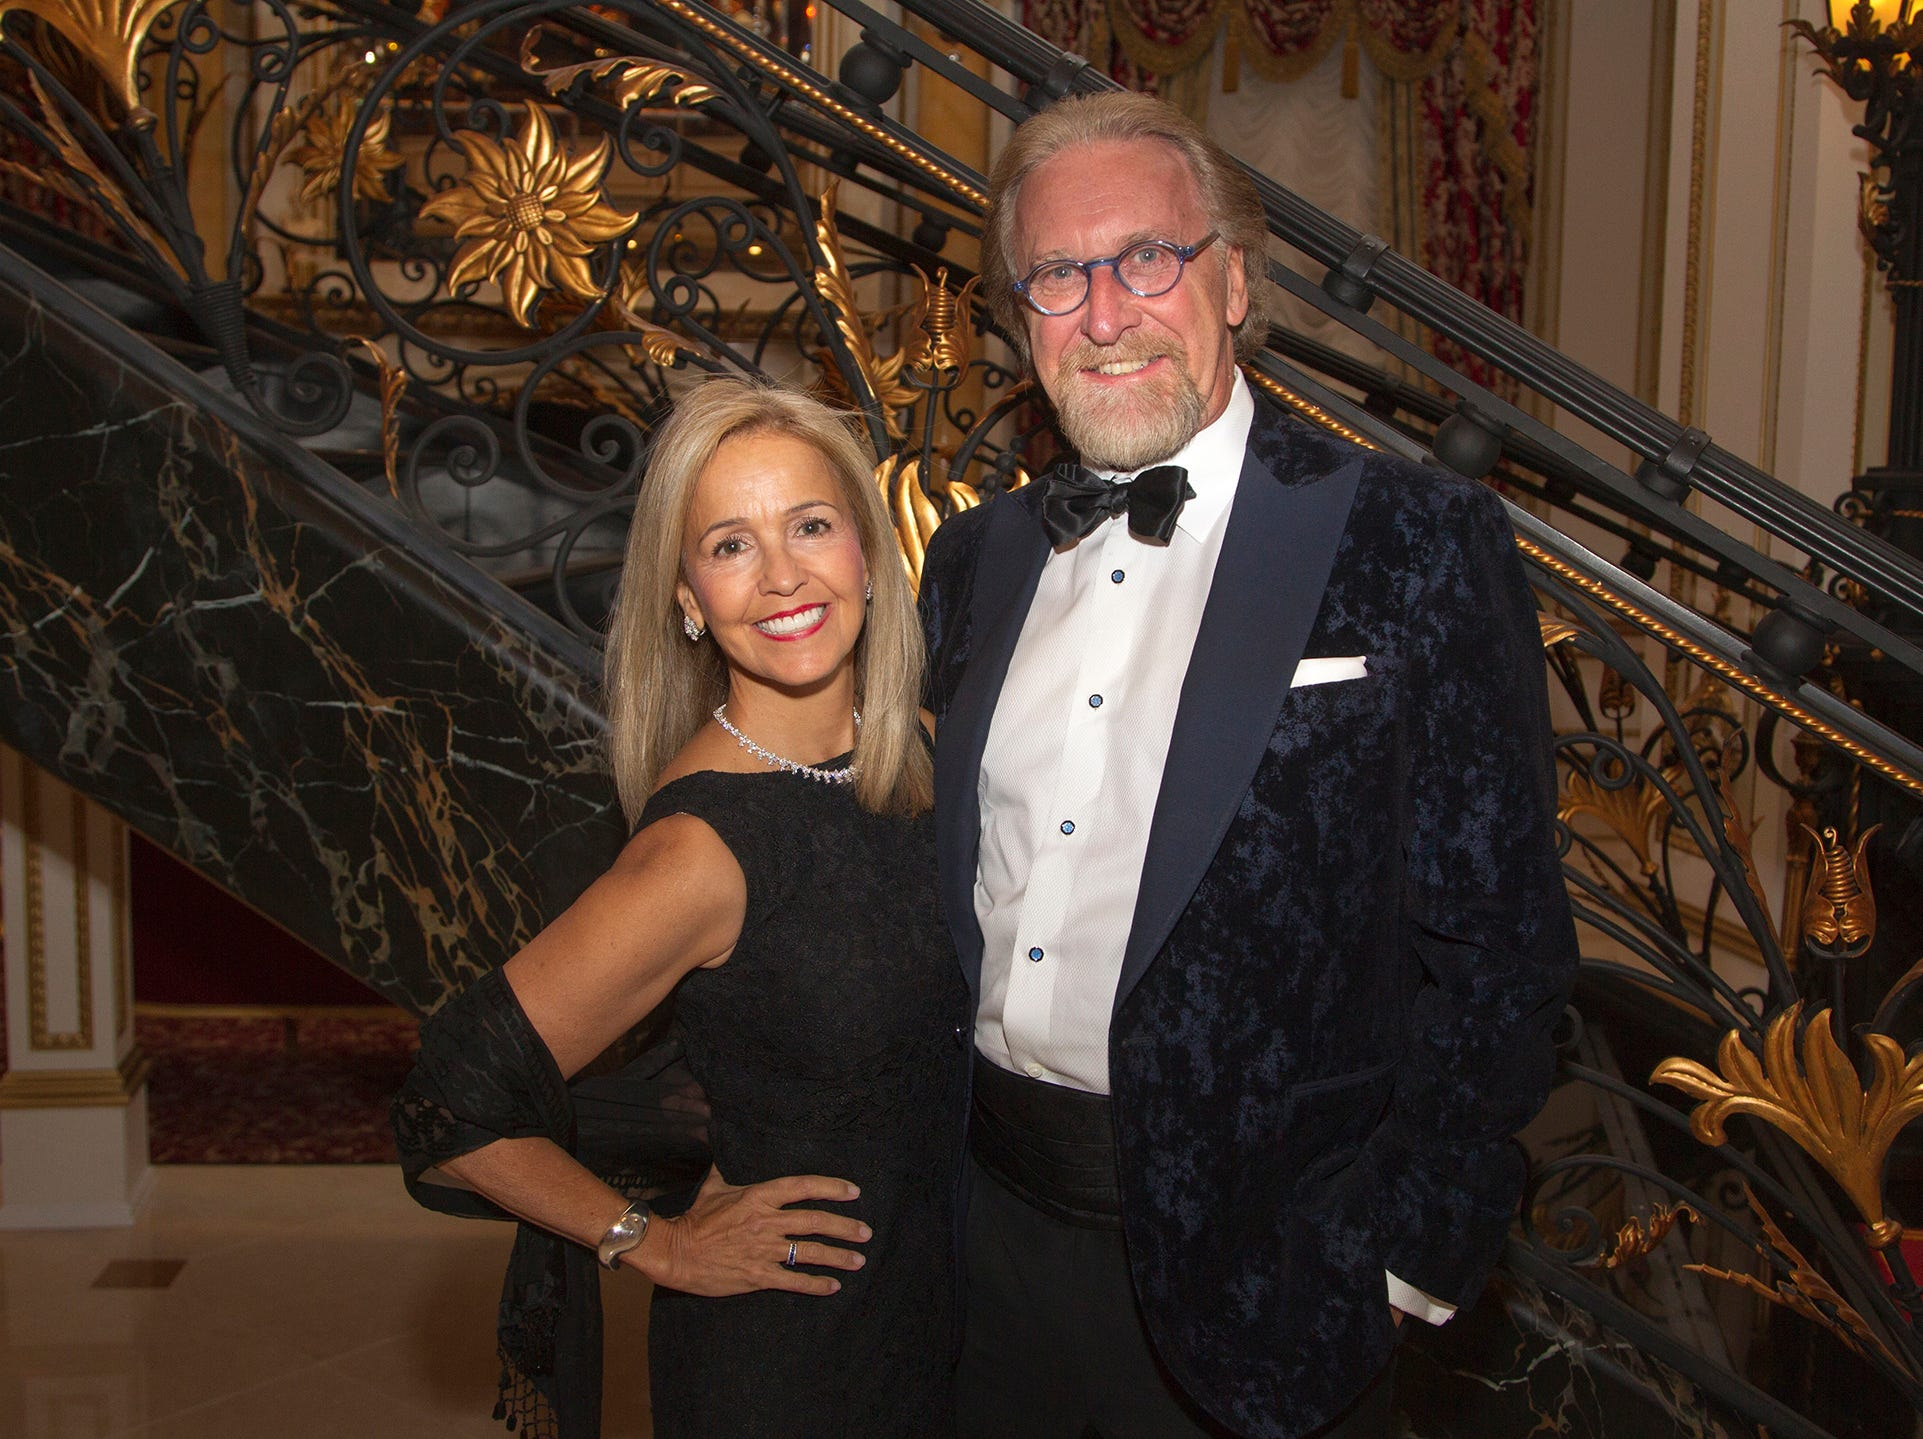 Elizabeth and Bob Van Dyk. The 72nd Annual Valley Ball gala at The Legacy Castle in Pompton Plains. 11/16/2018